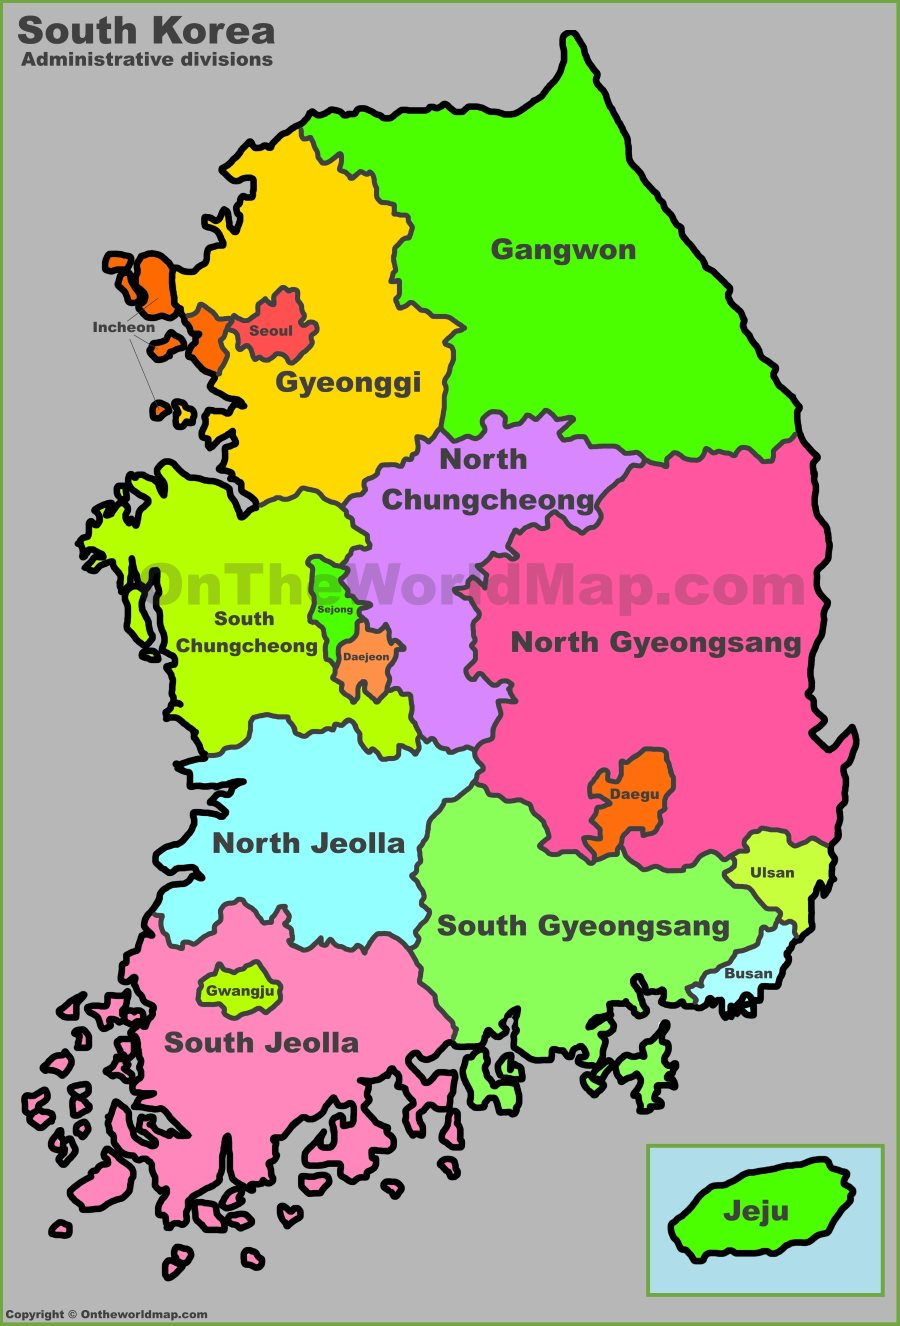 South Korea Maps Maps Of South Korea Republic Of Korea - Map of south korea